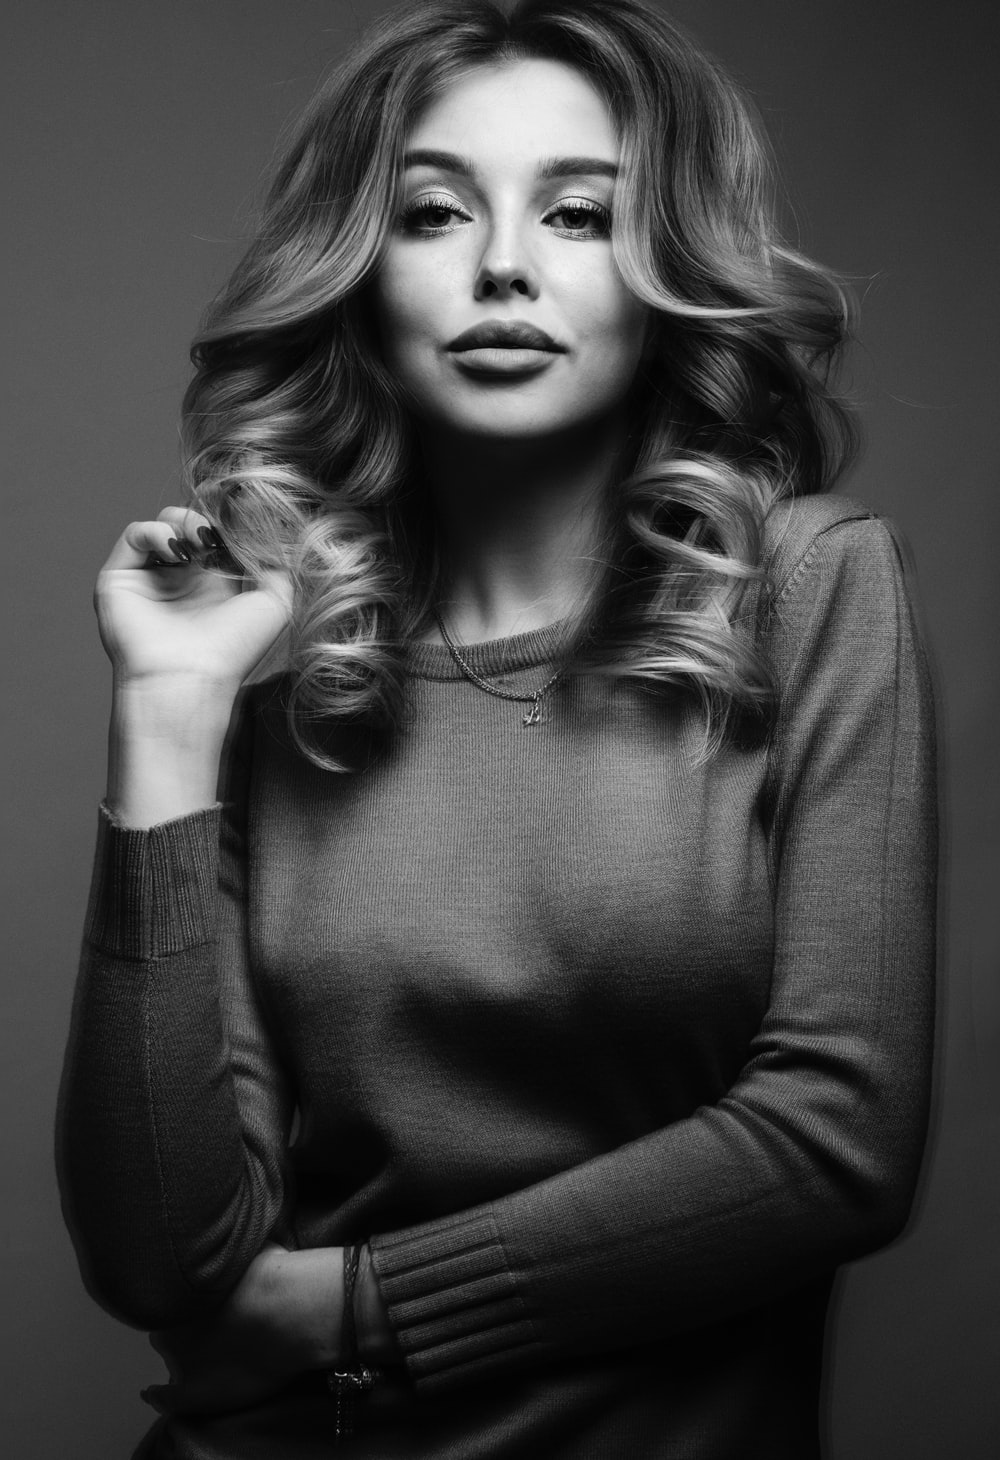 grayscale photo of woman in black sweater